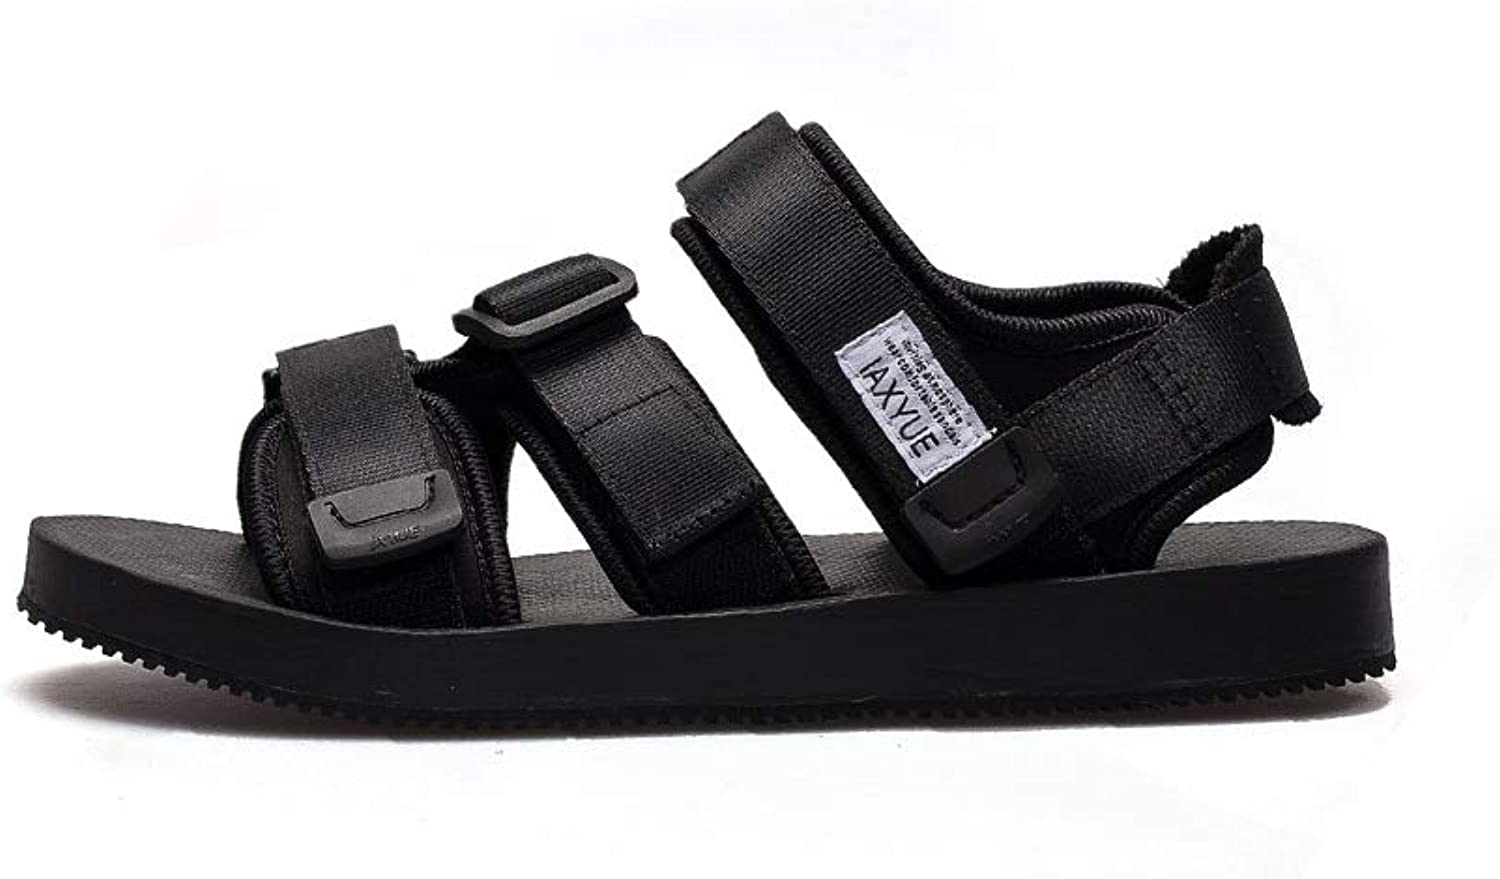 c216e9b37 HIAO sandals Sandals shoes Cloth Belt Surface Plastic Buckle Breathable  Rubber Sole Boy Youth Daily Outdoor